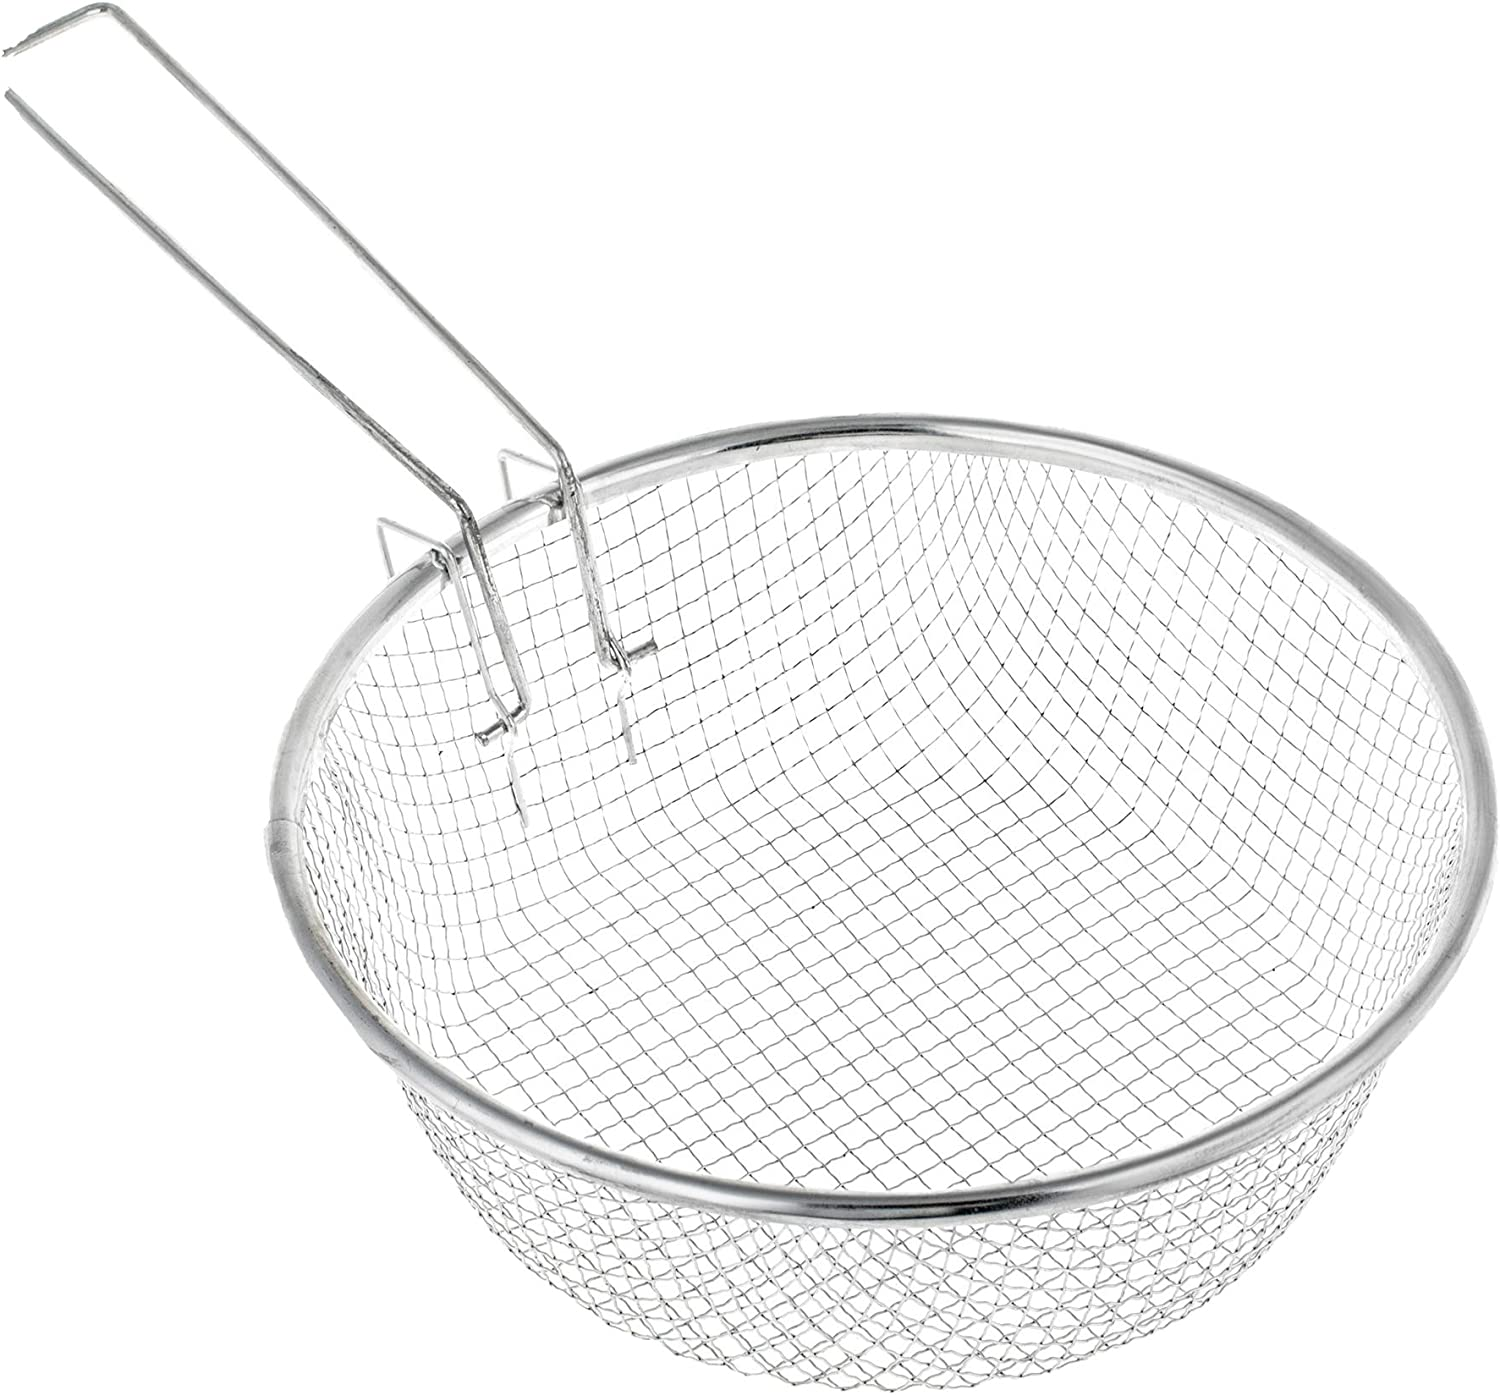 Commercial Round Fryer Basket with Handle - 11 Inch - Stainless Deep Wire Strainer for Frying